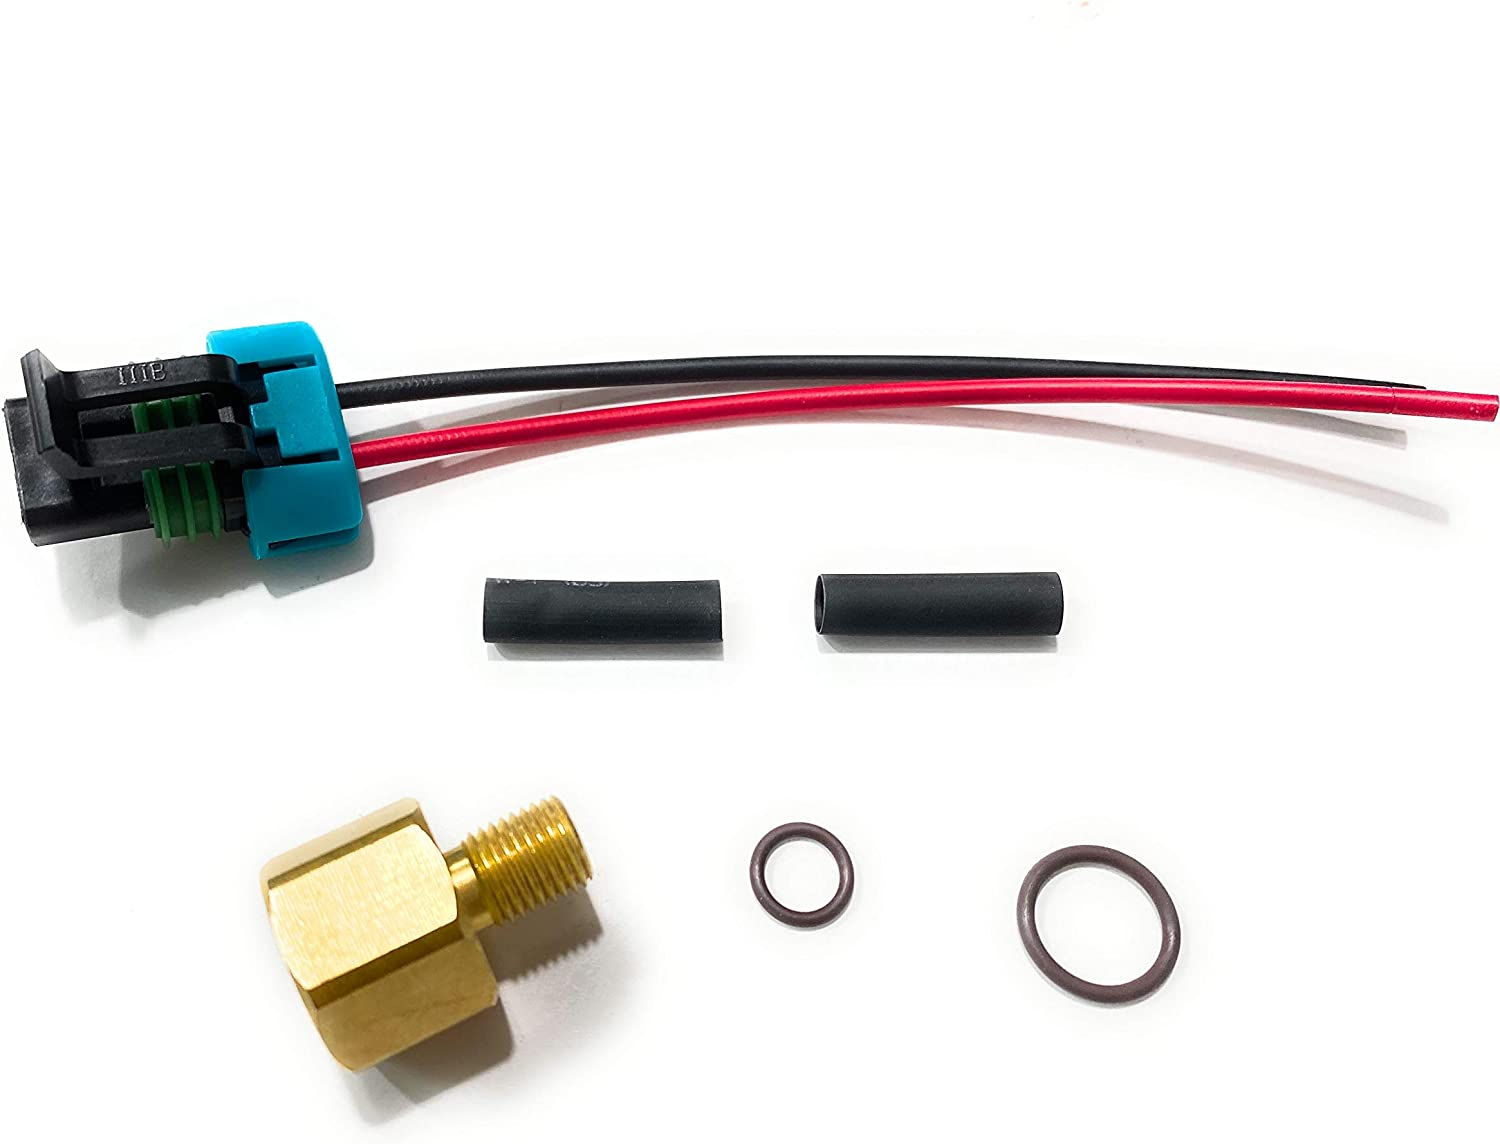 5.0 Sierra 18-8868 with O Rings Brass Fitting and with Adapter and Harness Kit Replaces Mercruiser 861155A3 Low Pressure Electric Fuel Pump for Mercury Mercruiser 4.3 5.7 carburated Engines